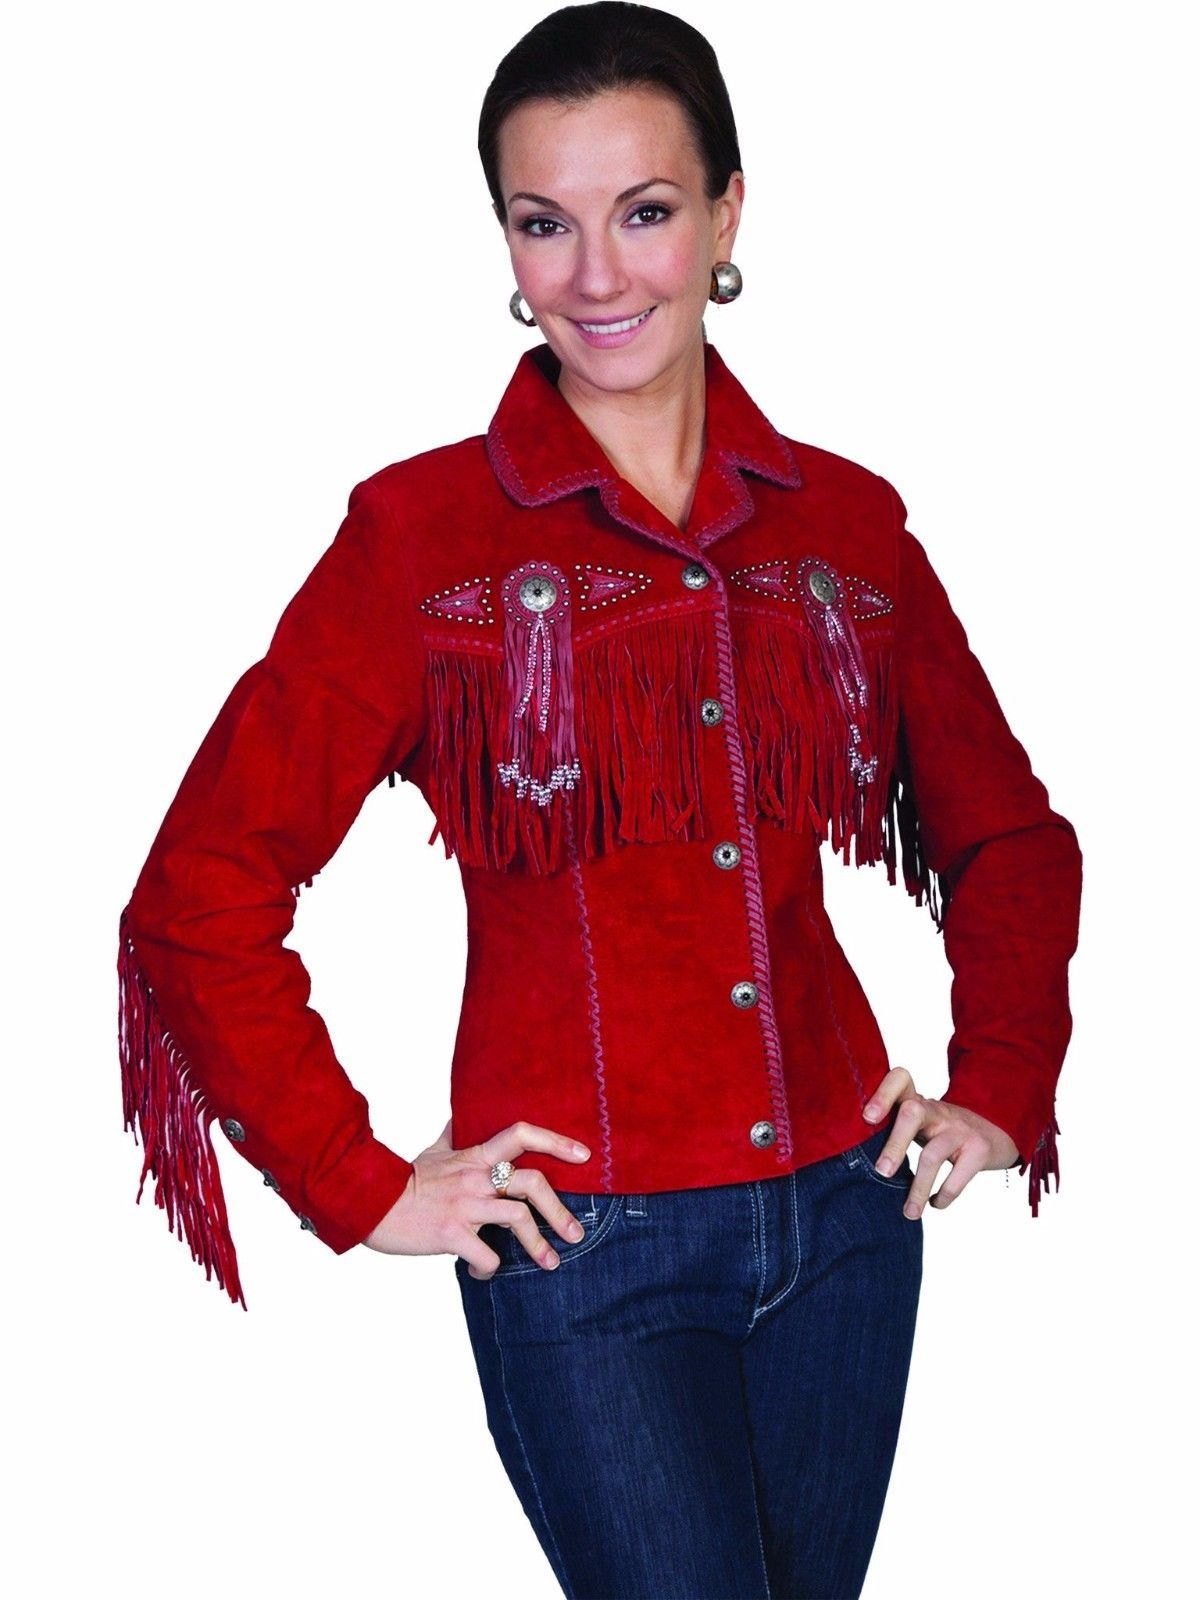 QASTAN Women's New Red Fringes / Concho Suede Cow Leather Jacket WWJ14E